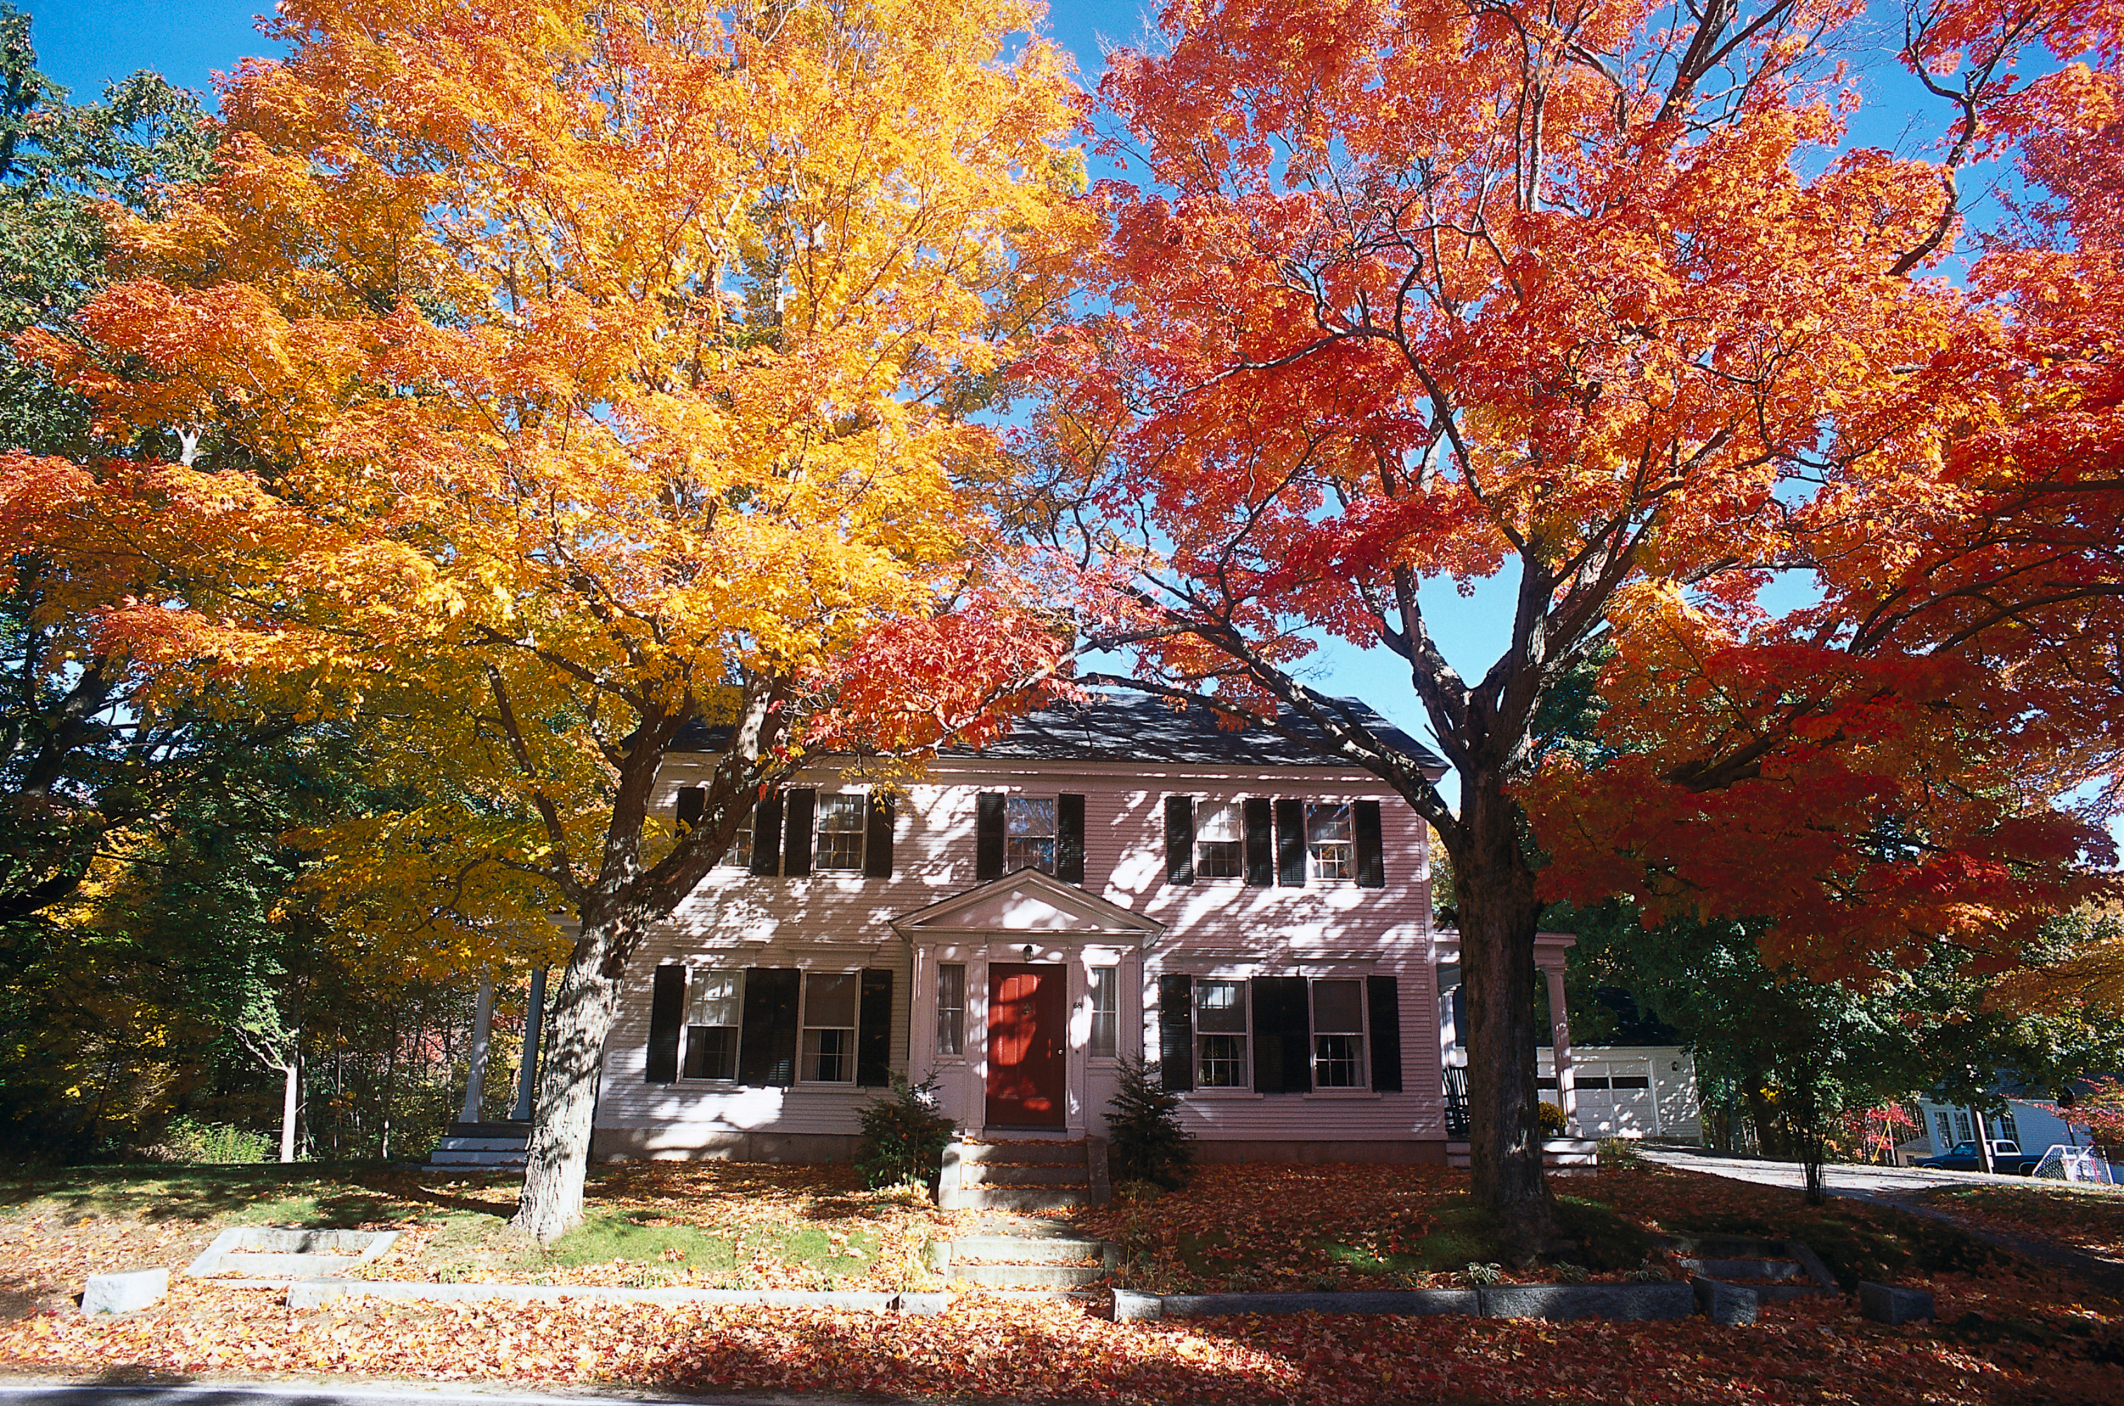 Use This Fall Season to Prepare for Your Spring Listing